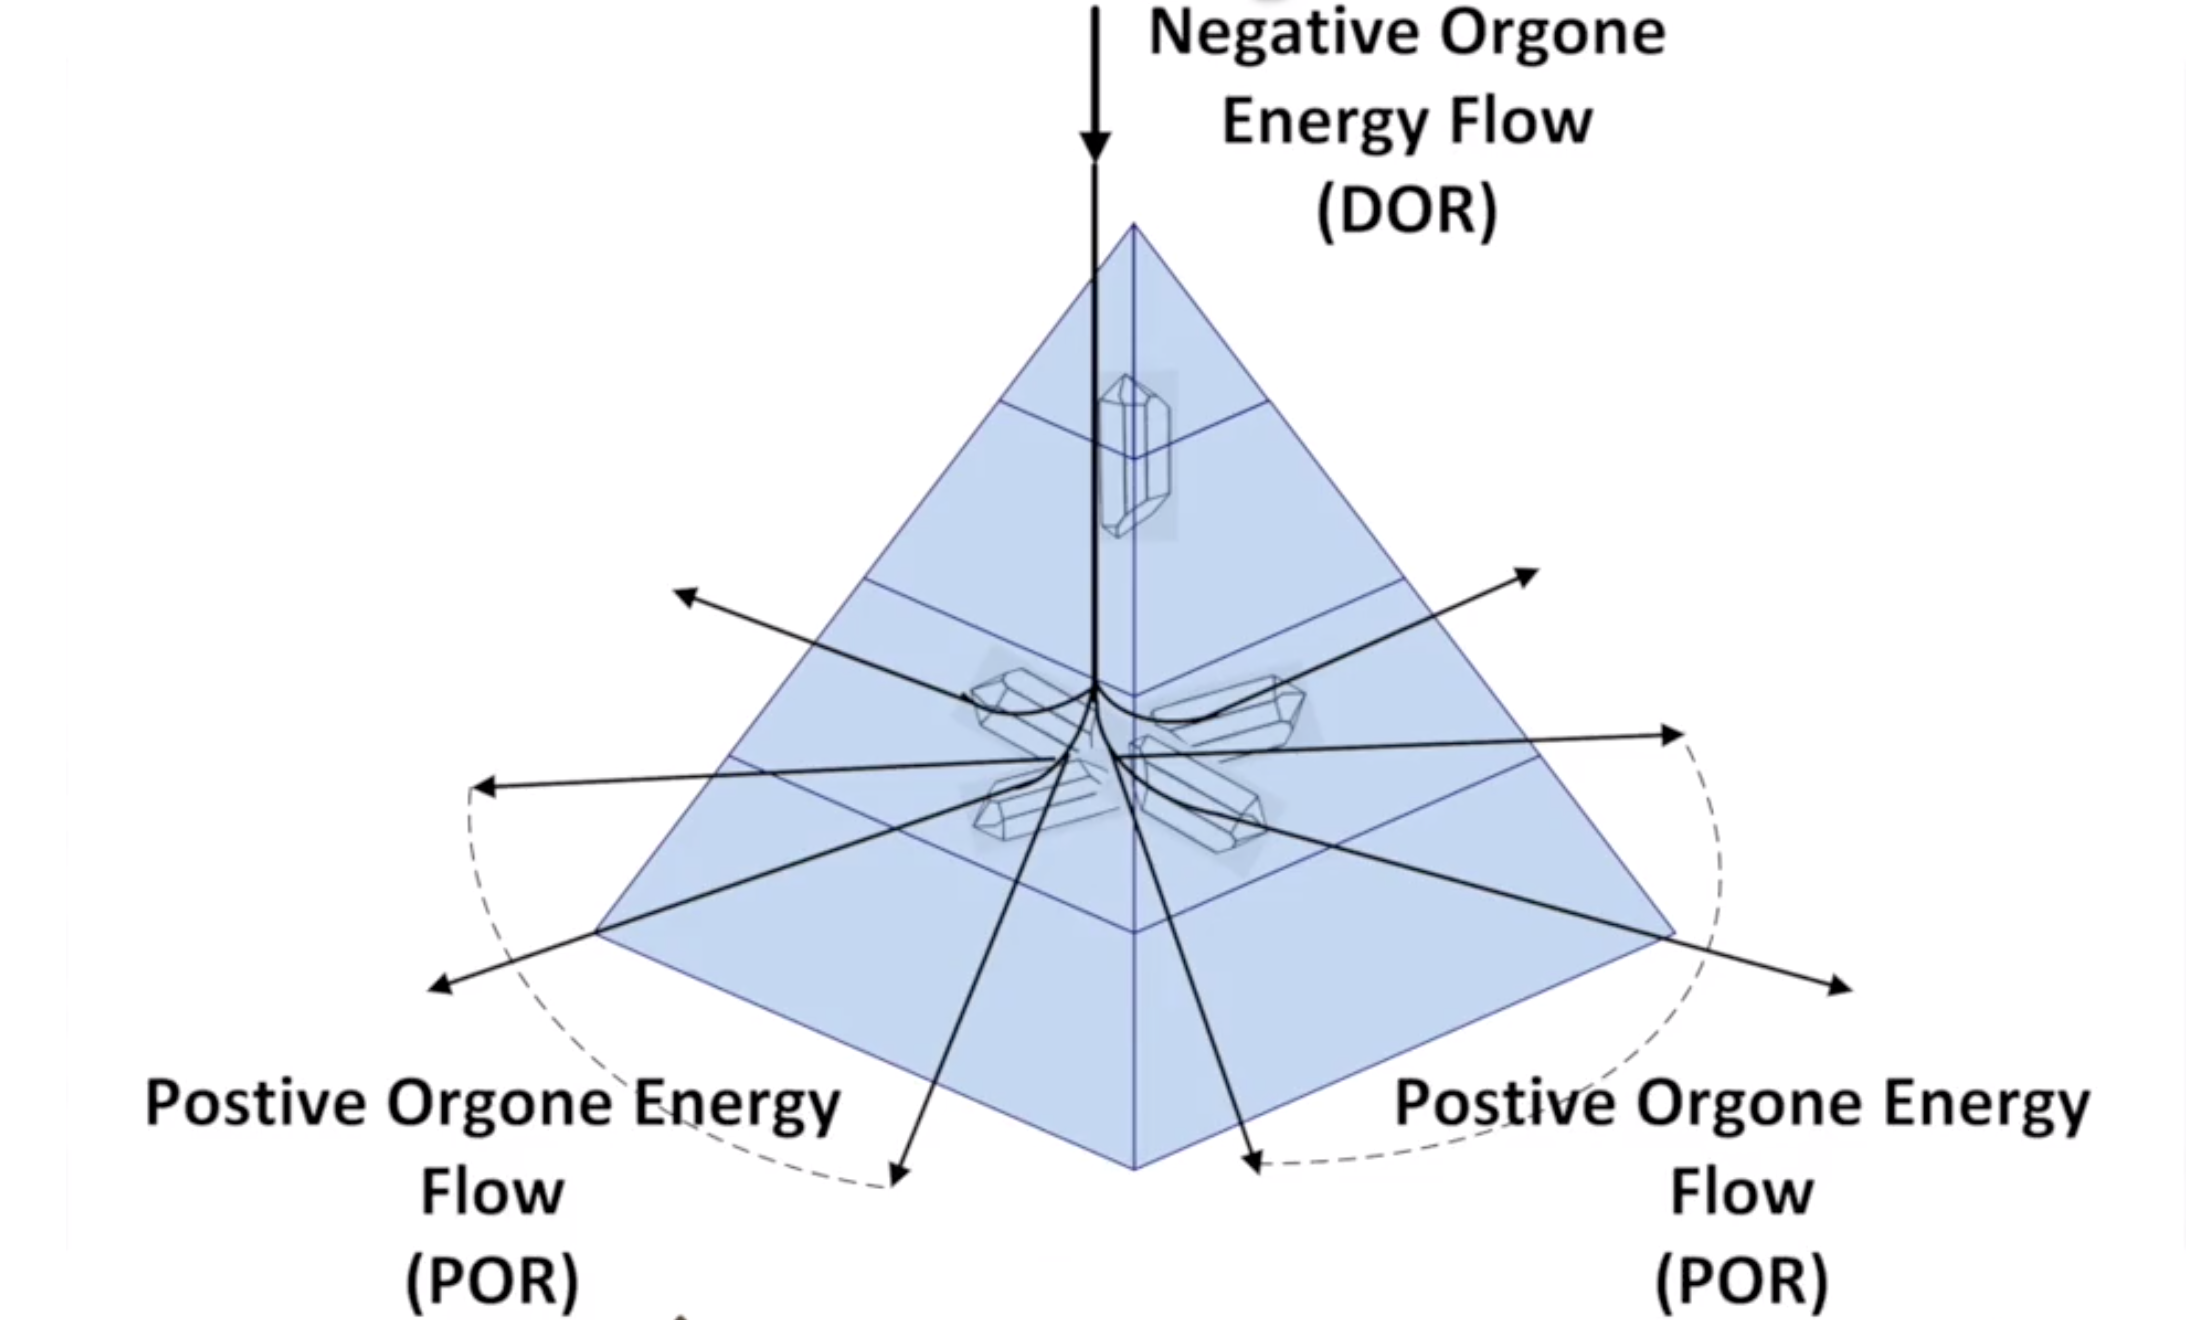 Illustration on how orgonite pyramid converts low frequencies into high frequencies with the use of healing crystals